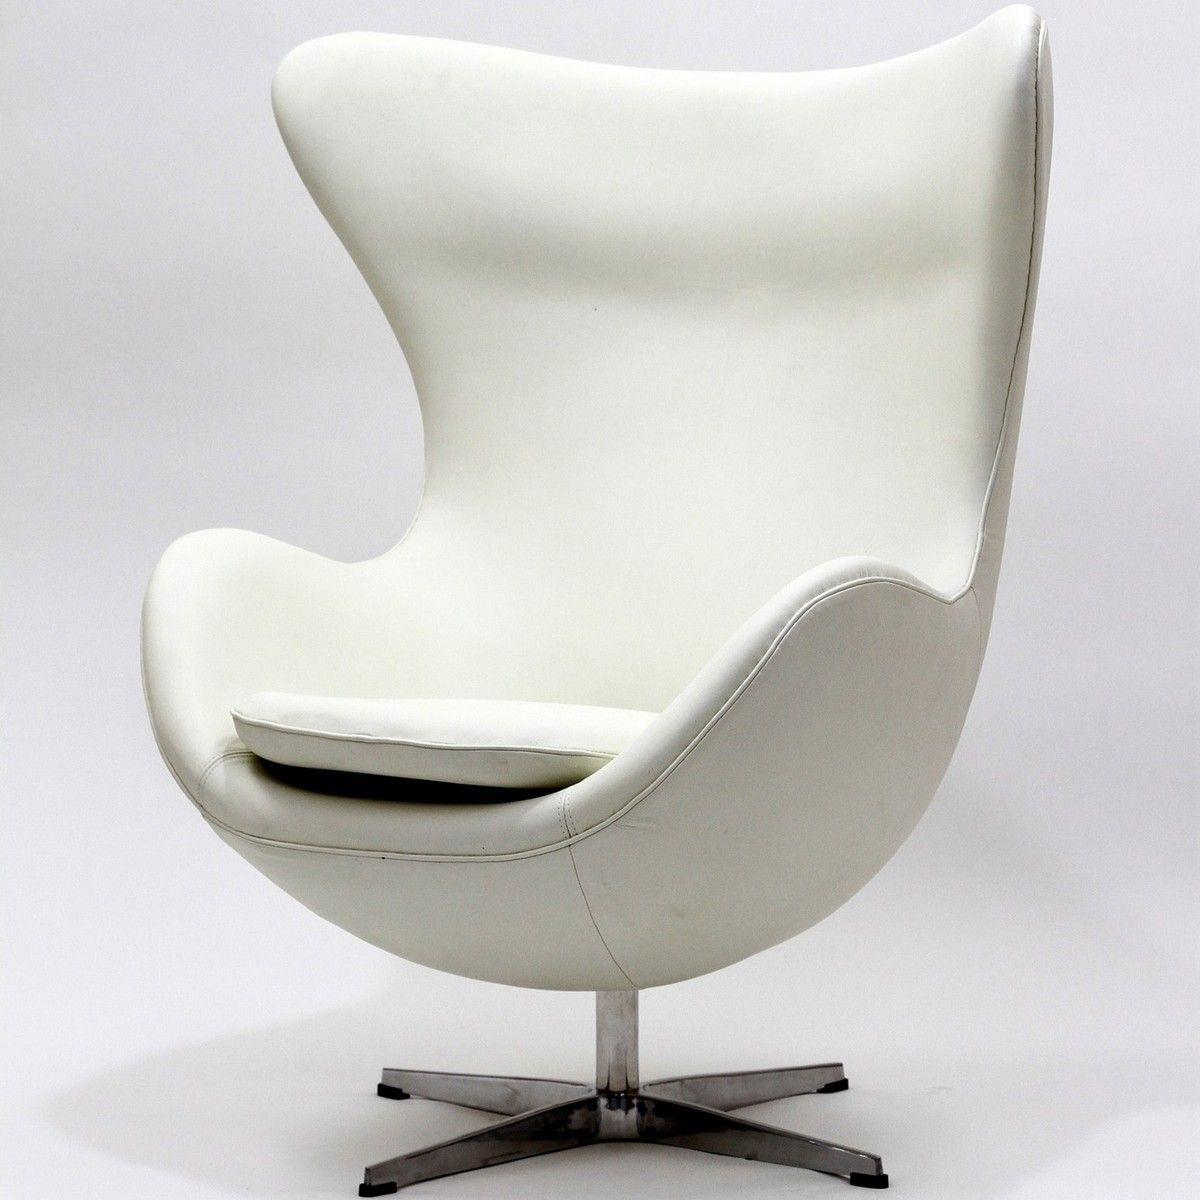 Jacobsen Style Egg Chair in Leather (Multiple Colors